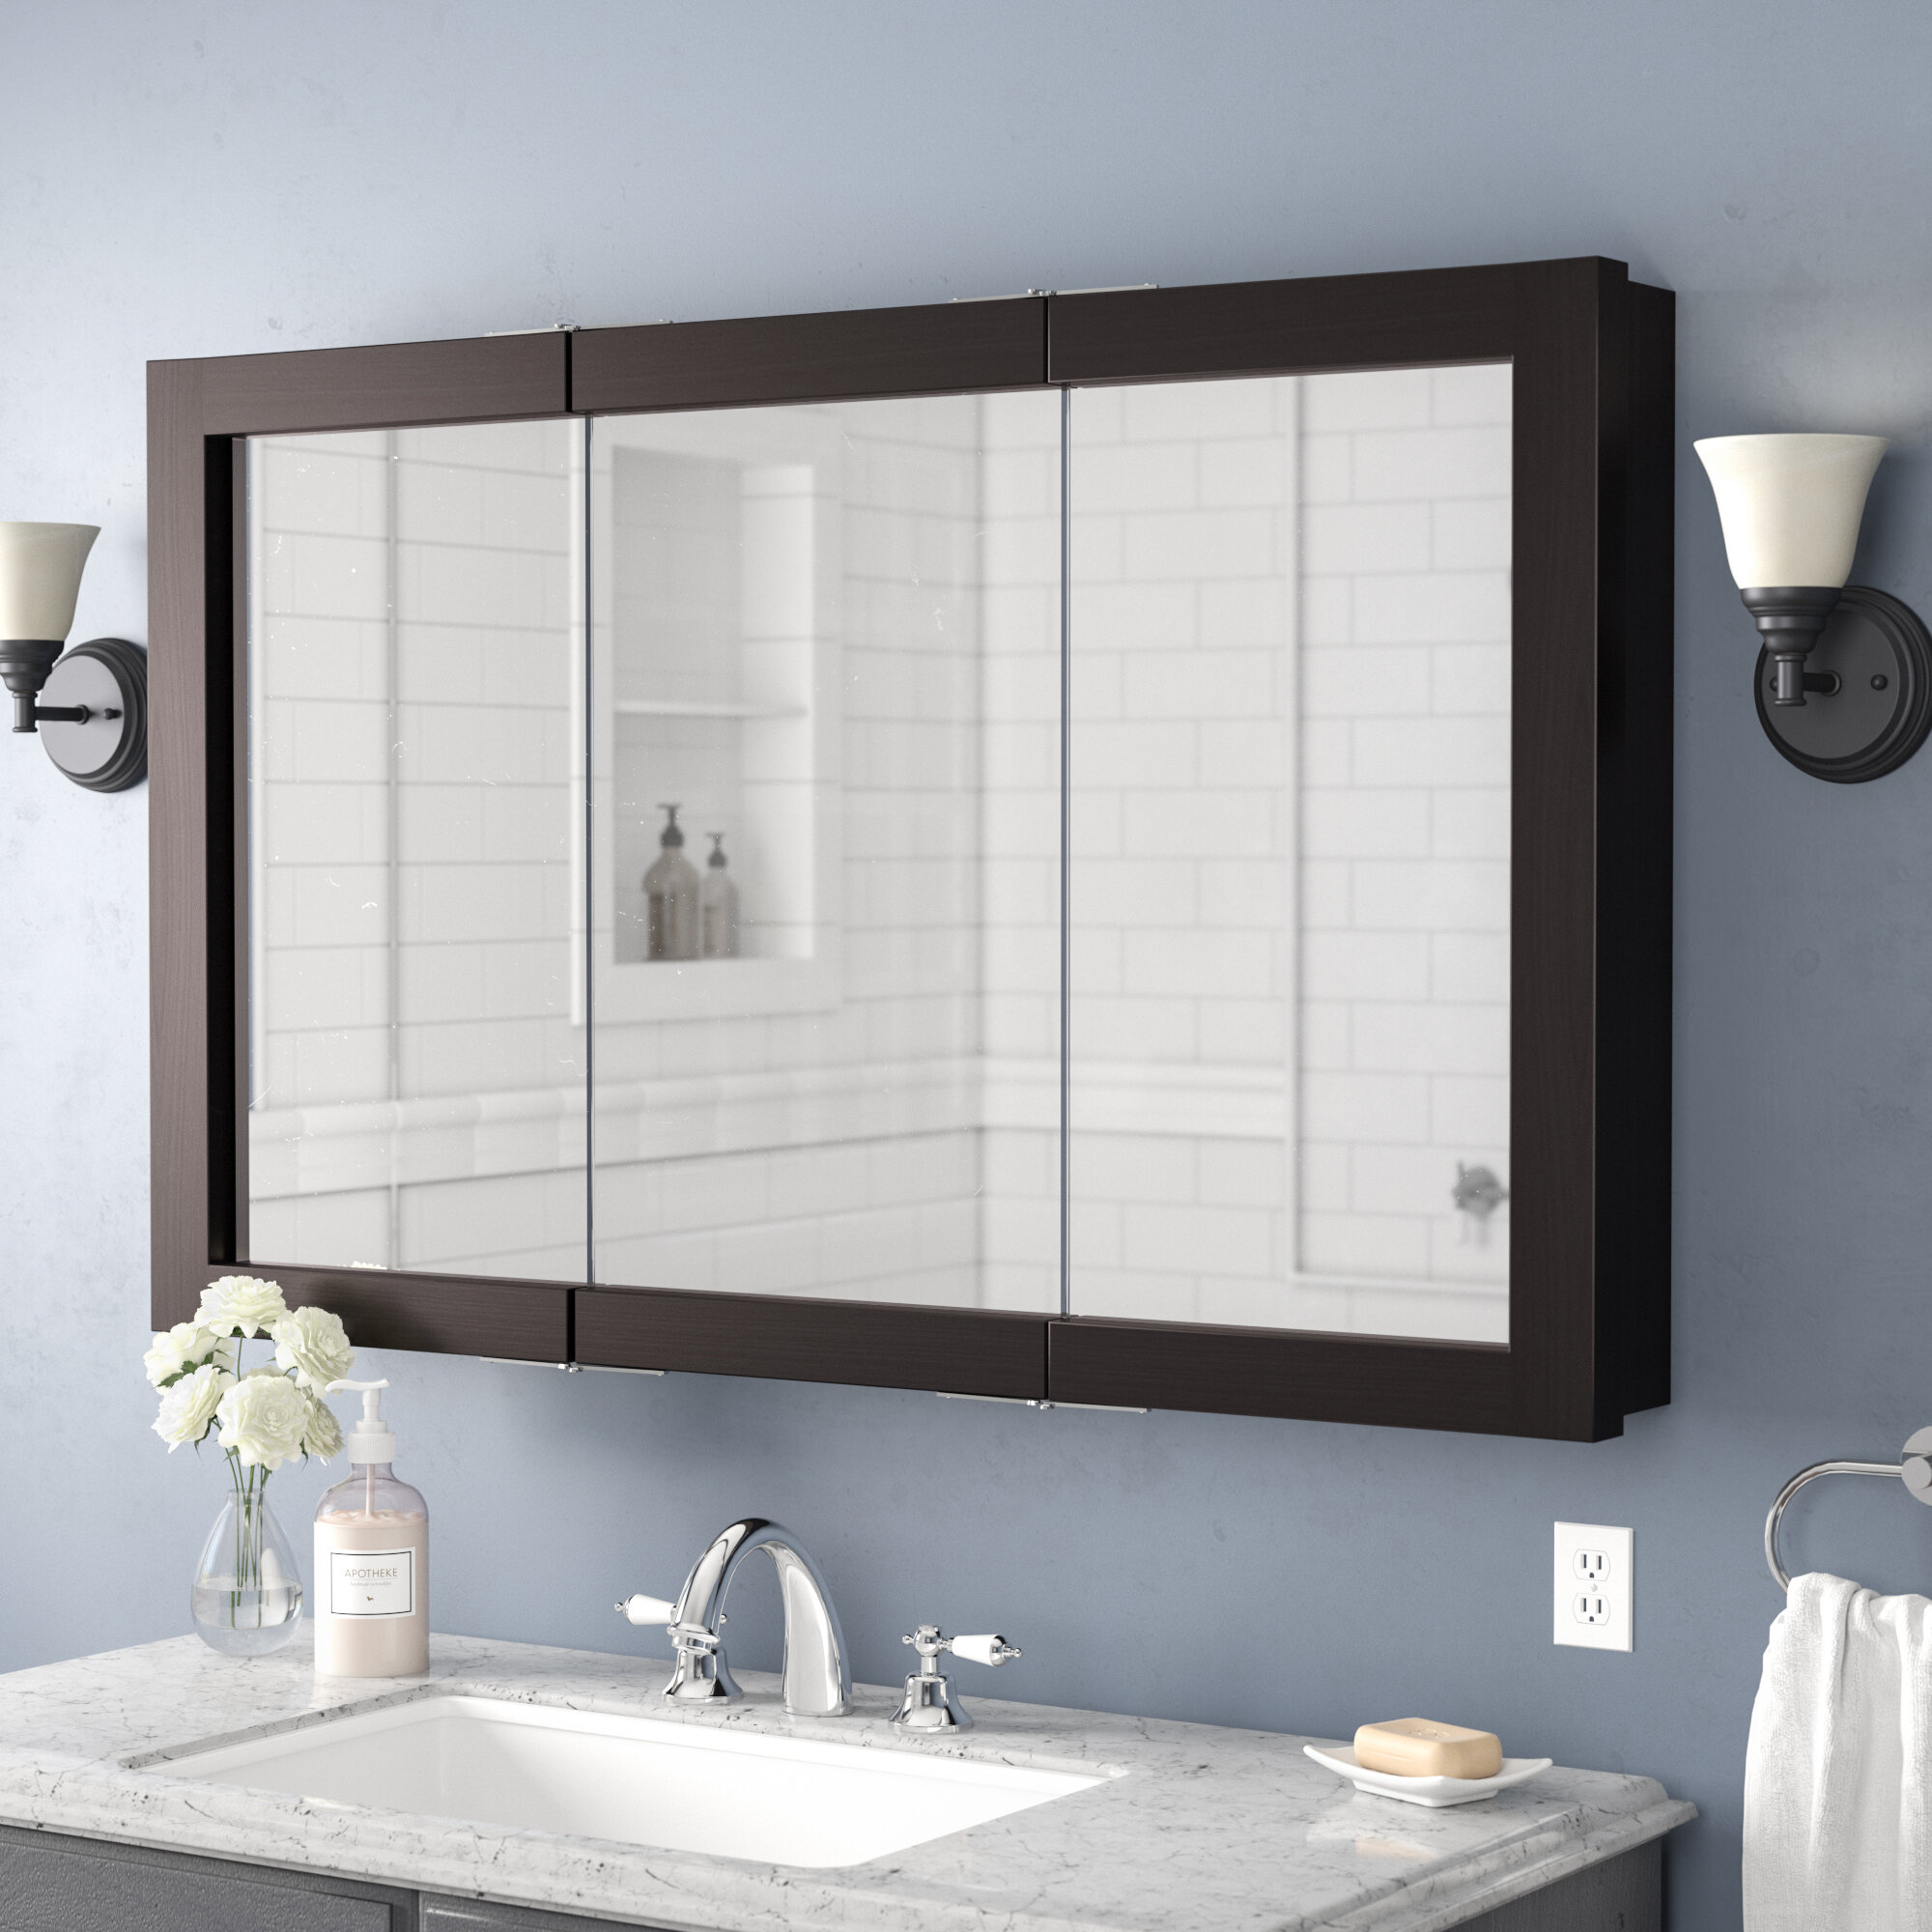 Wayfair Medicine Cabinets On Sale You Ll Love In 2021